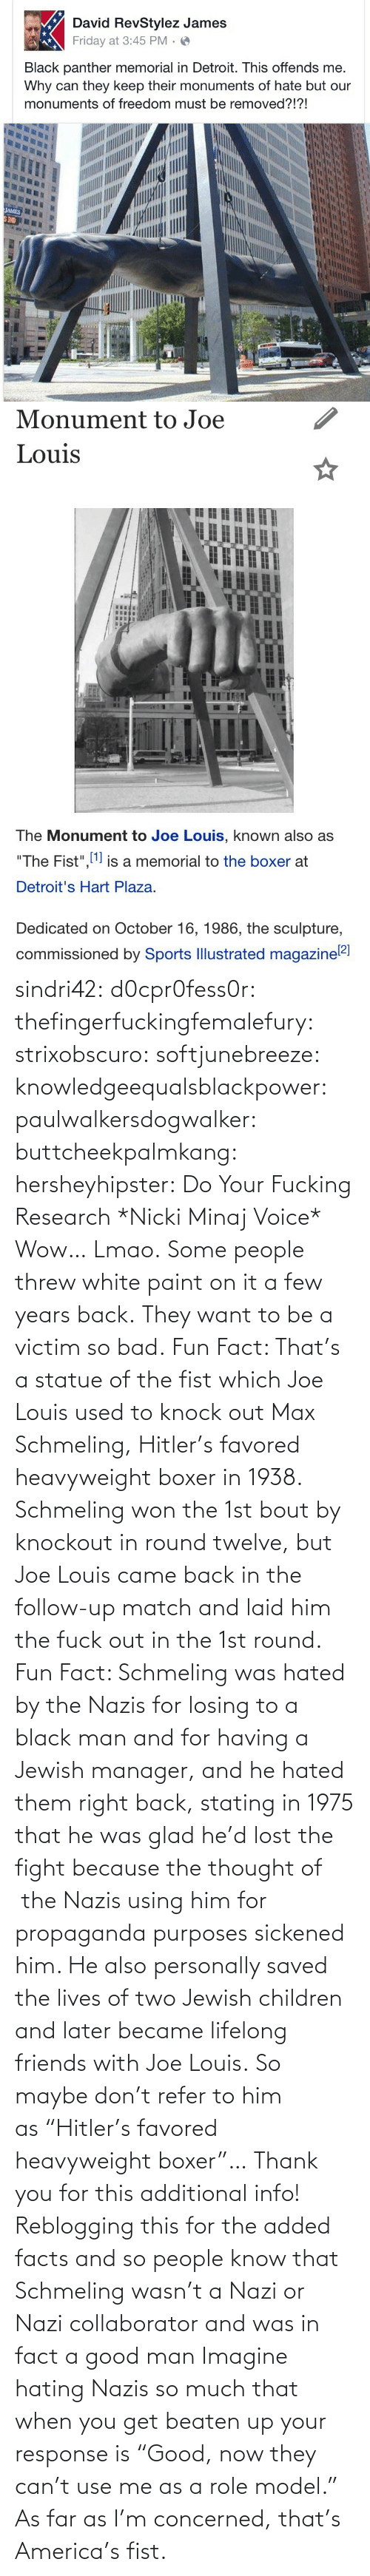 "Fight: sindri42:  d0cpr0fess0r:  thefingerfuckingfemalefury:  strixobscuro:  softjunebreeze:  knowledgeequalsblackpower:  paulwalkersdogwalker:   buttcheekpalmkang:   hersheyhipster:  Do Your Fucking Research *Nicki Minaj Voice*    Wow… Lmao.   Some people threw white paint on it a few years back.   They want to be a victim so bad.  Fun Fact: That's a statue of the fist which Joe Louis used to knock out Max Schmeling, Hitler's favored heavyweight boxer in 1938. Schmeling won the 1st bout by knockout in round twelve, but Joe Louis came back in the follow-up match and laid him the fuck out in the 1st round.  Fun Fact: Schmeling was hated by the Nazis for losing to a black man and for having a Jewish manager, and he hated them right back, stating in 1975 that he was glad he'd lost the fight because the thought of  the Nazis using him for propaganda purposes sickened him. He also personally saved the lives of two Jewish children and later became lifelong friends with Joe Louis. So maybe don't refer to him as ""Hitler's favored heavyweight boxer""…  Thank you for this additional info! Reblogging this for the added facts and so people know that Schmeling wasn't a Nazi or Nazi collaborator and was in fact a good man   Imagine hating Nazis so much that when you get beaten up your response is ""Good, now they can't use me as a role model.""  As far as I'm concerned, that's America's fist."